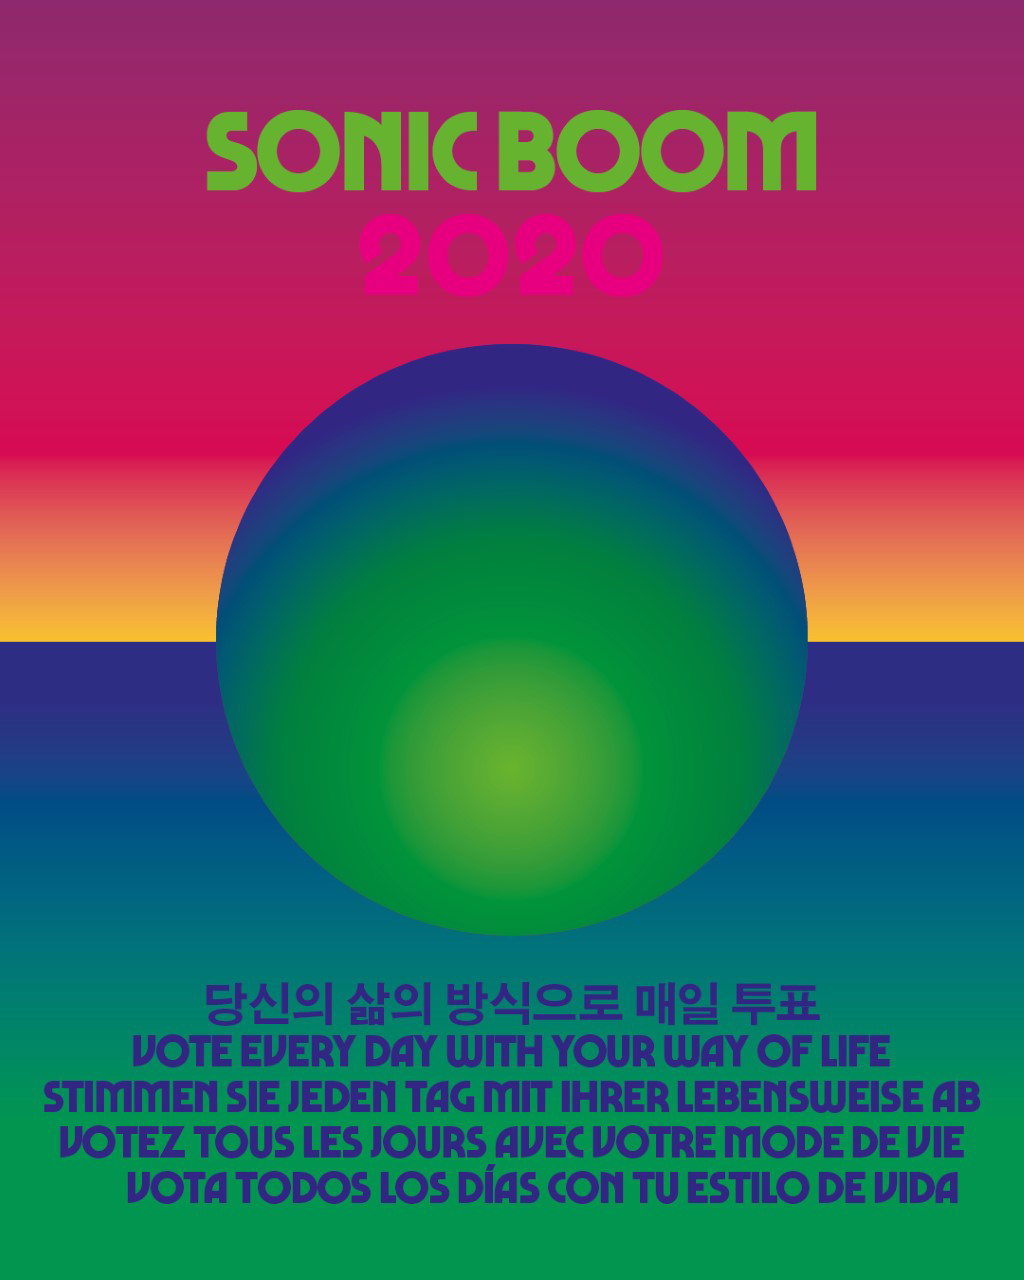 Sonic Boom 2020. Vote every day with your way of life.